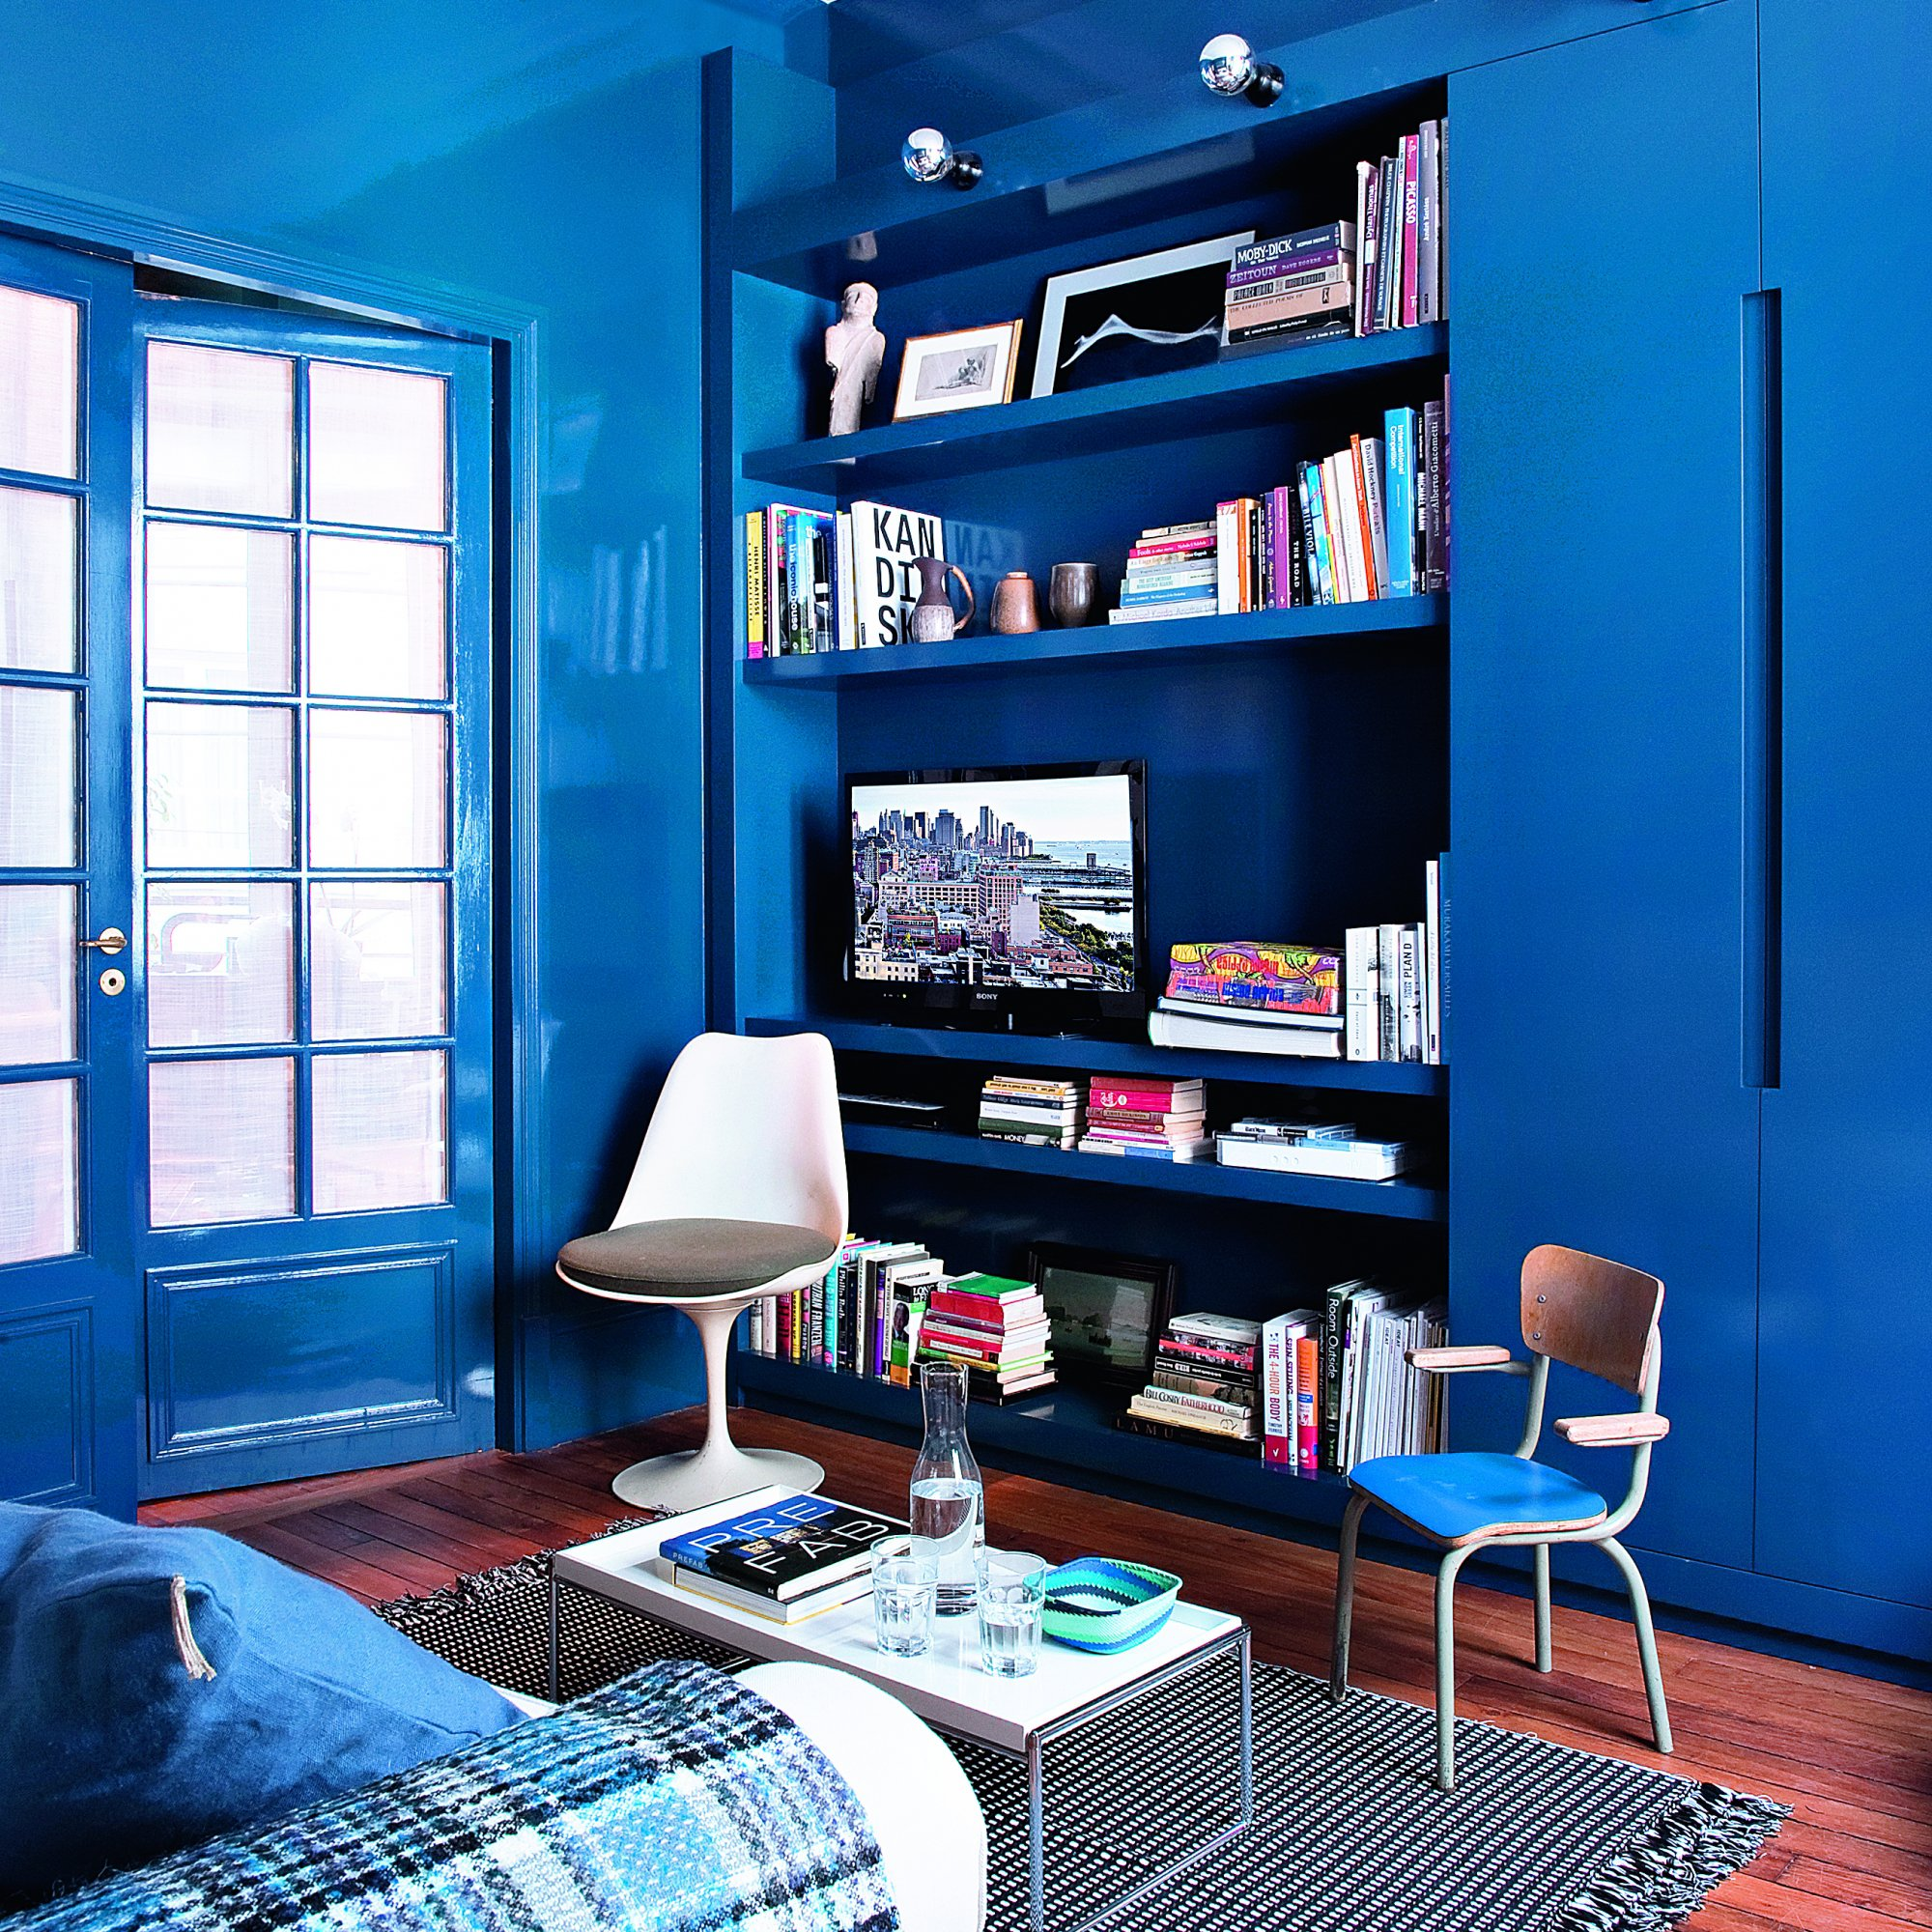 22 inspirations pour colorer son int rieur page 2 sur 5 des id es. Black Bedroom Furniture Sets. Home Design Ideas